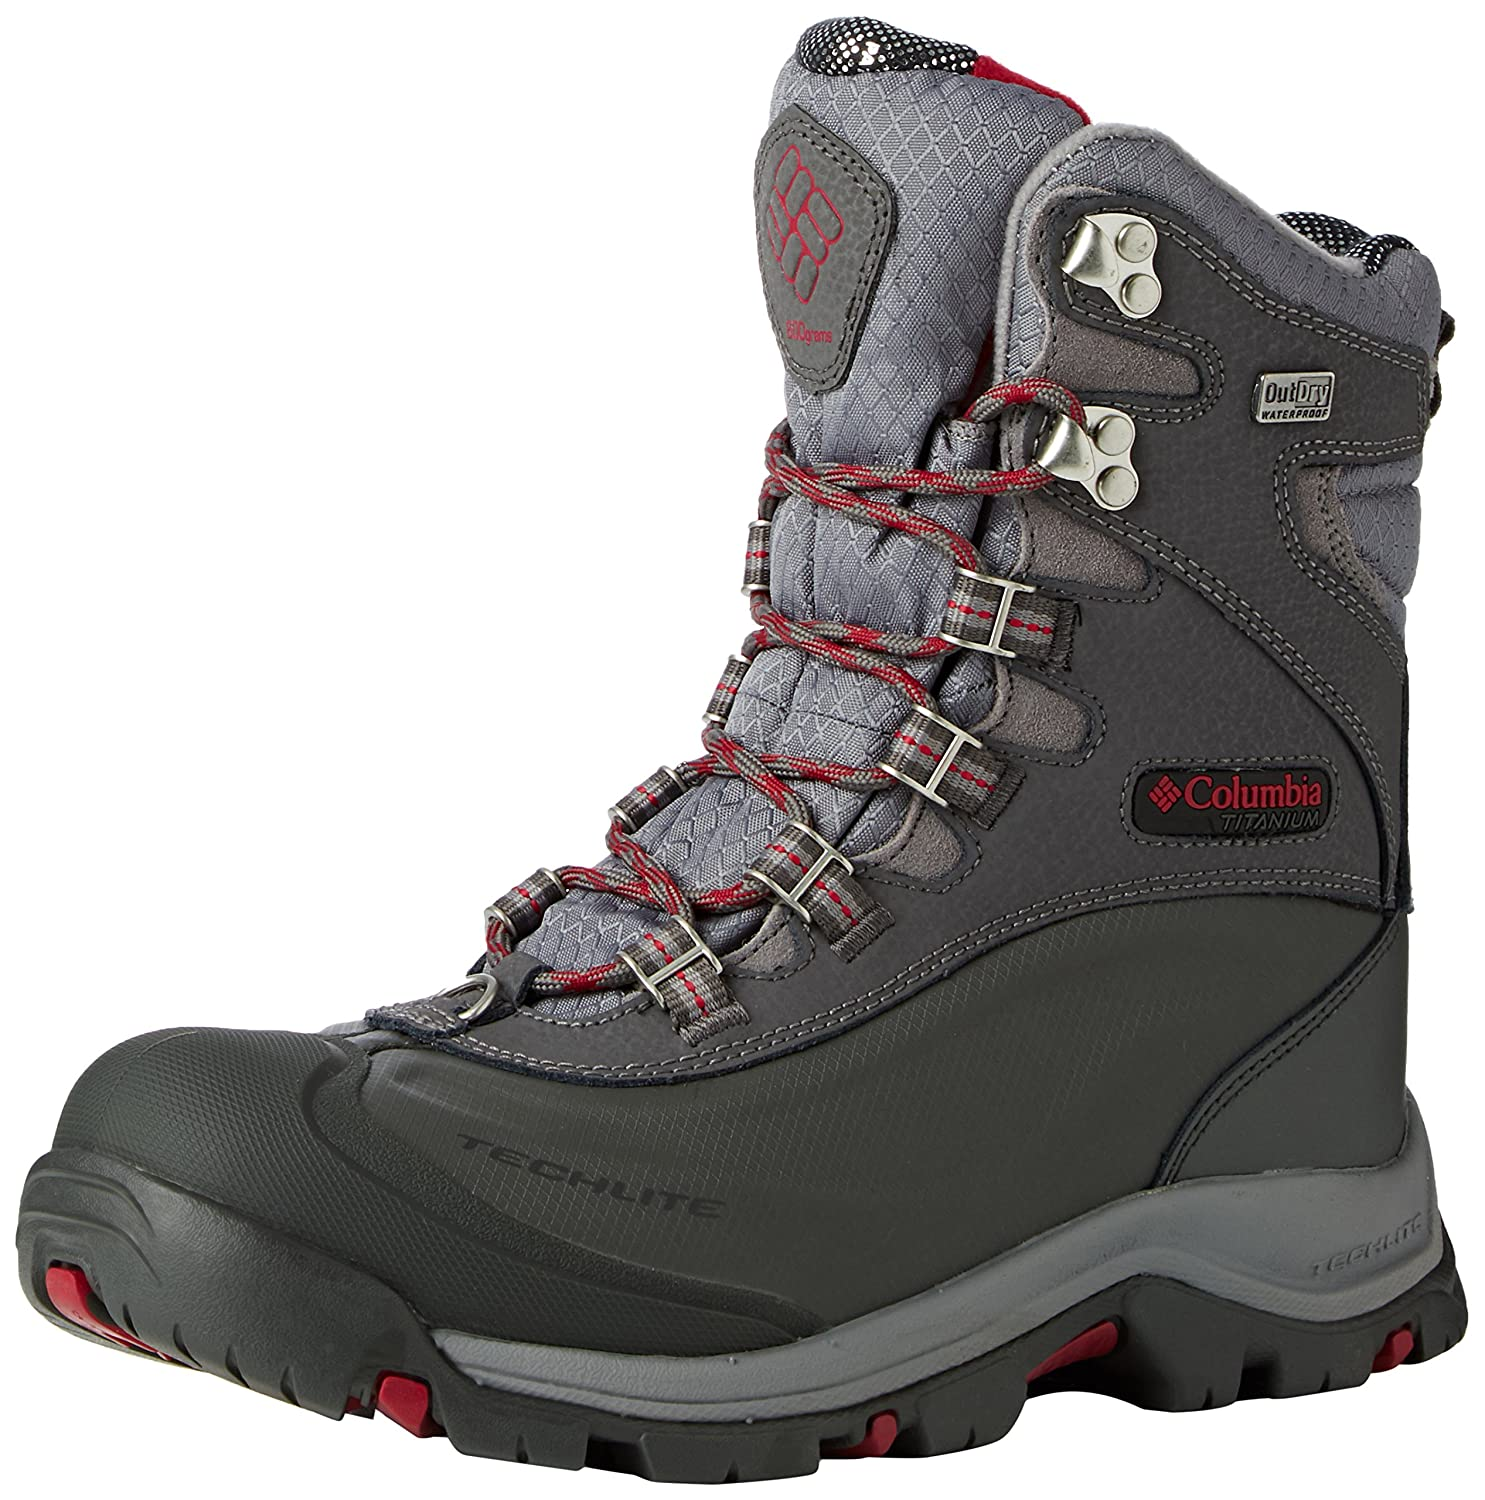 Columbia Bugaboot Plus III Titanium Omni-Heat Winter Boots - Women's B00X5D3UME 6.5|Shale/Pomagranite